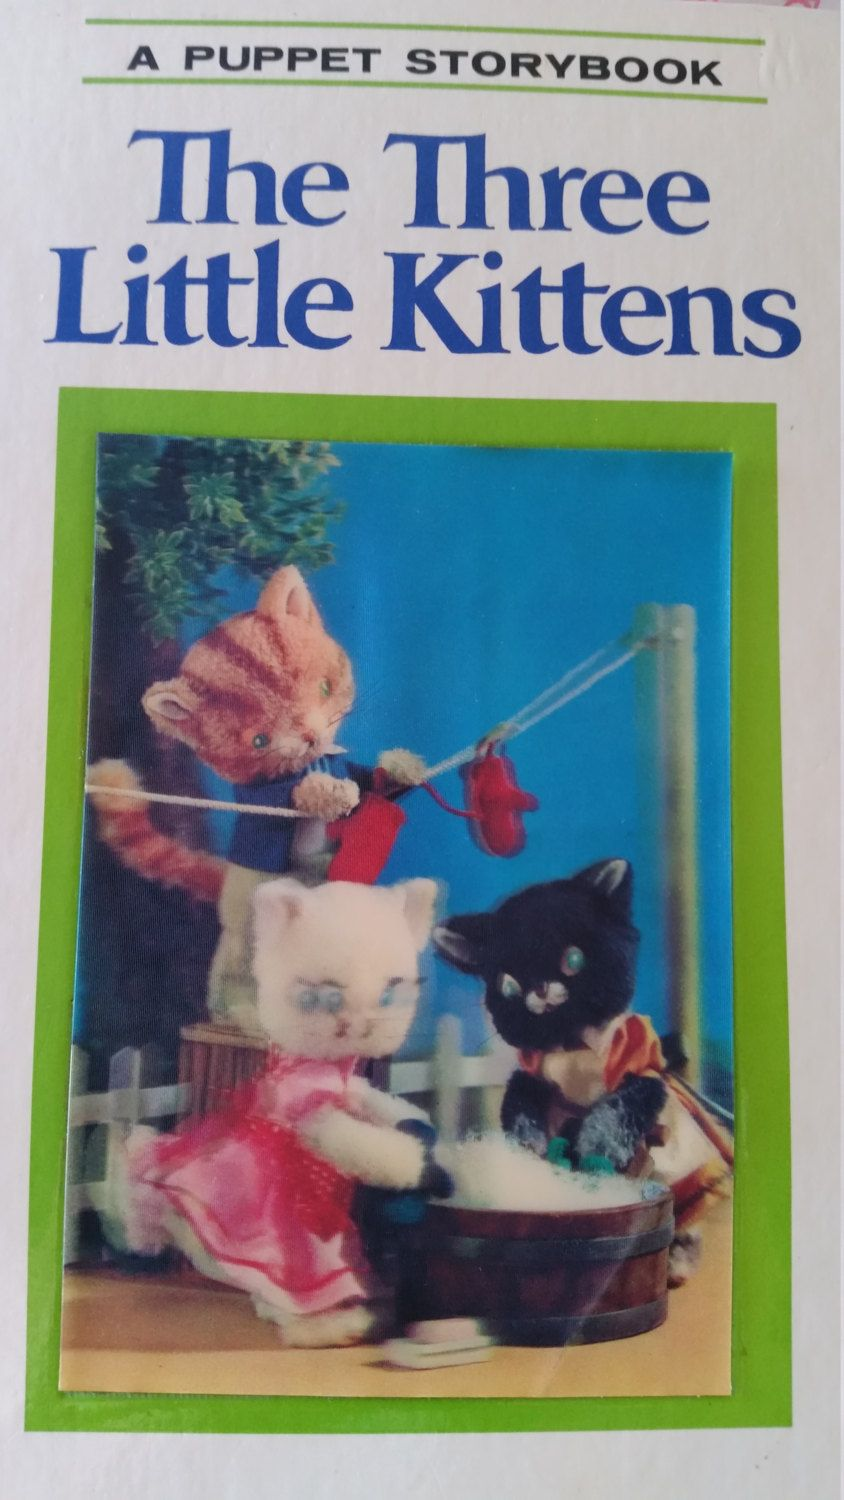 Three Little Kittens A Puppet Storybook Hologram On Front Cover Of The Little Puppets In Lifelike Poses 1968 Grosset Little Kittens Kittens Printing Binding